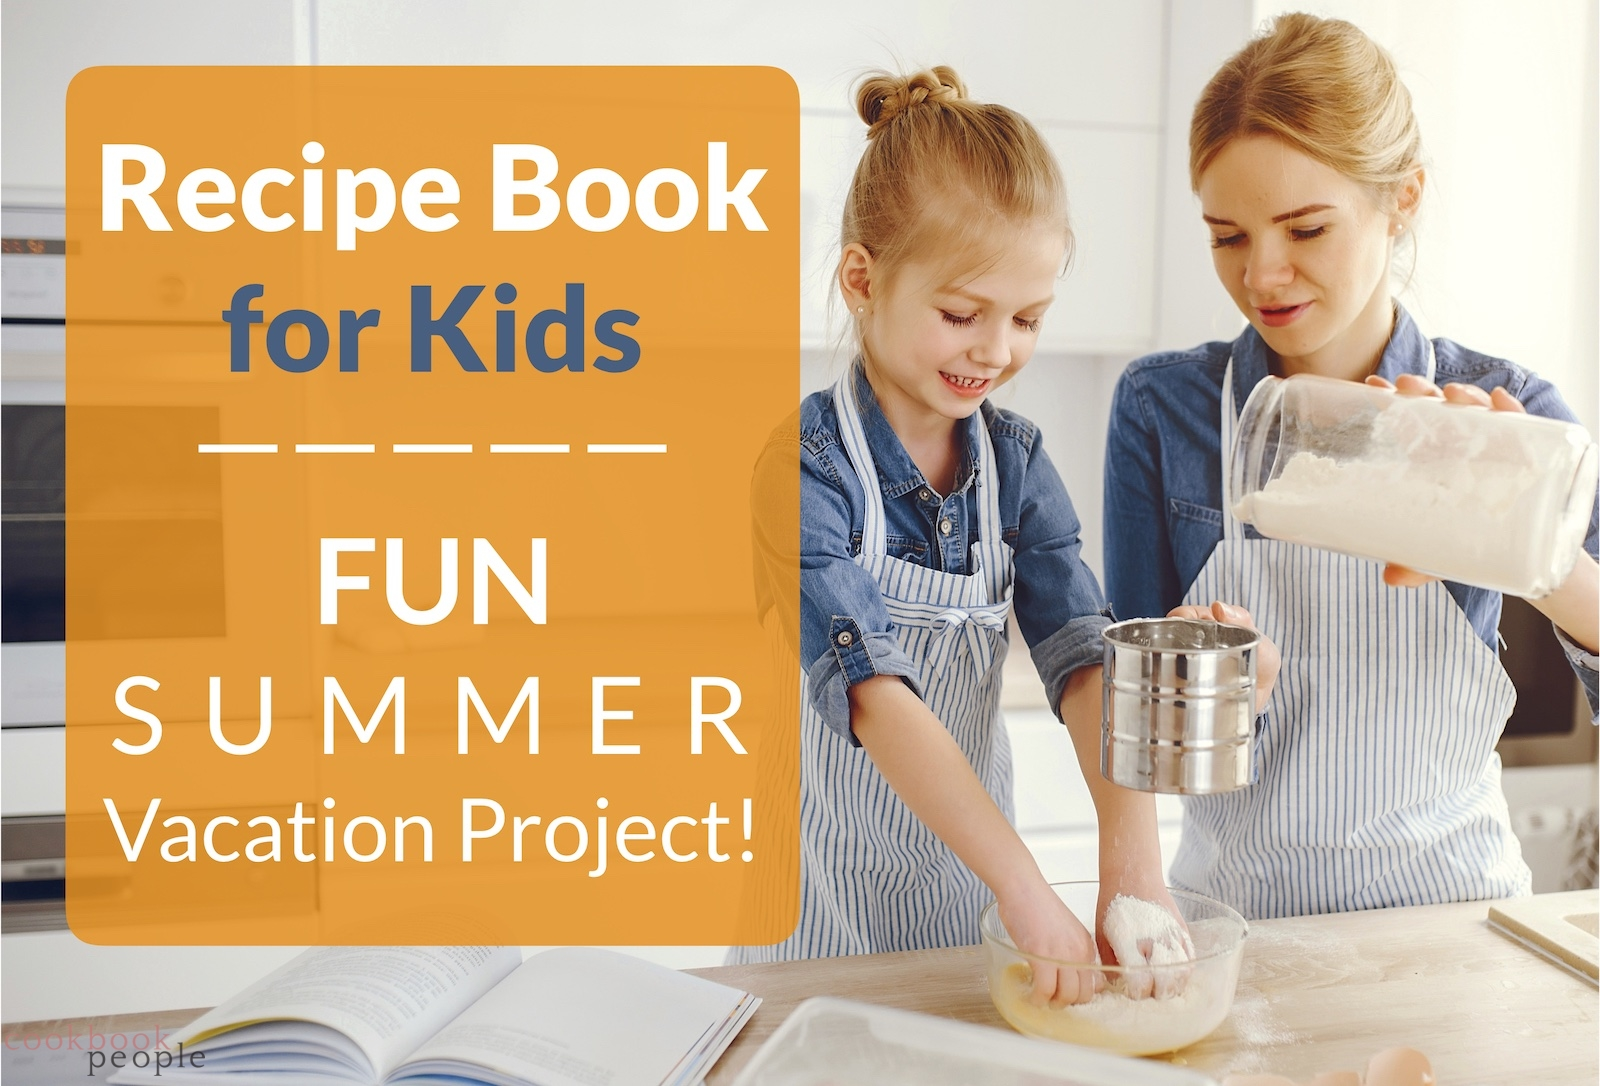 Mother and daughter cooking with text: Recipe Book for Kids: Fun summer vacation project